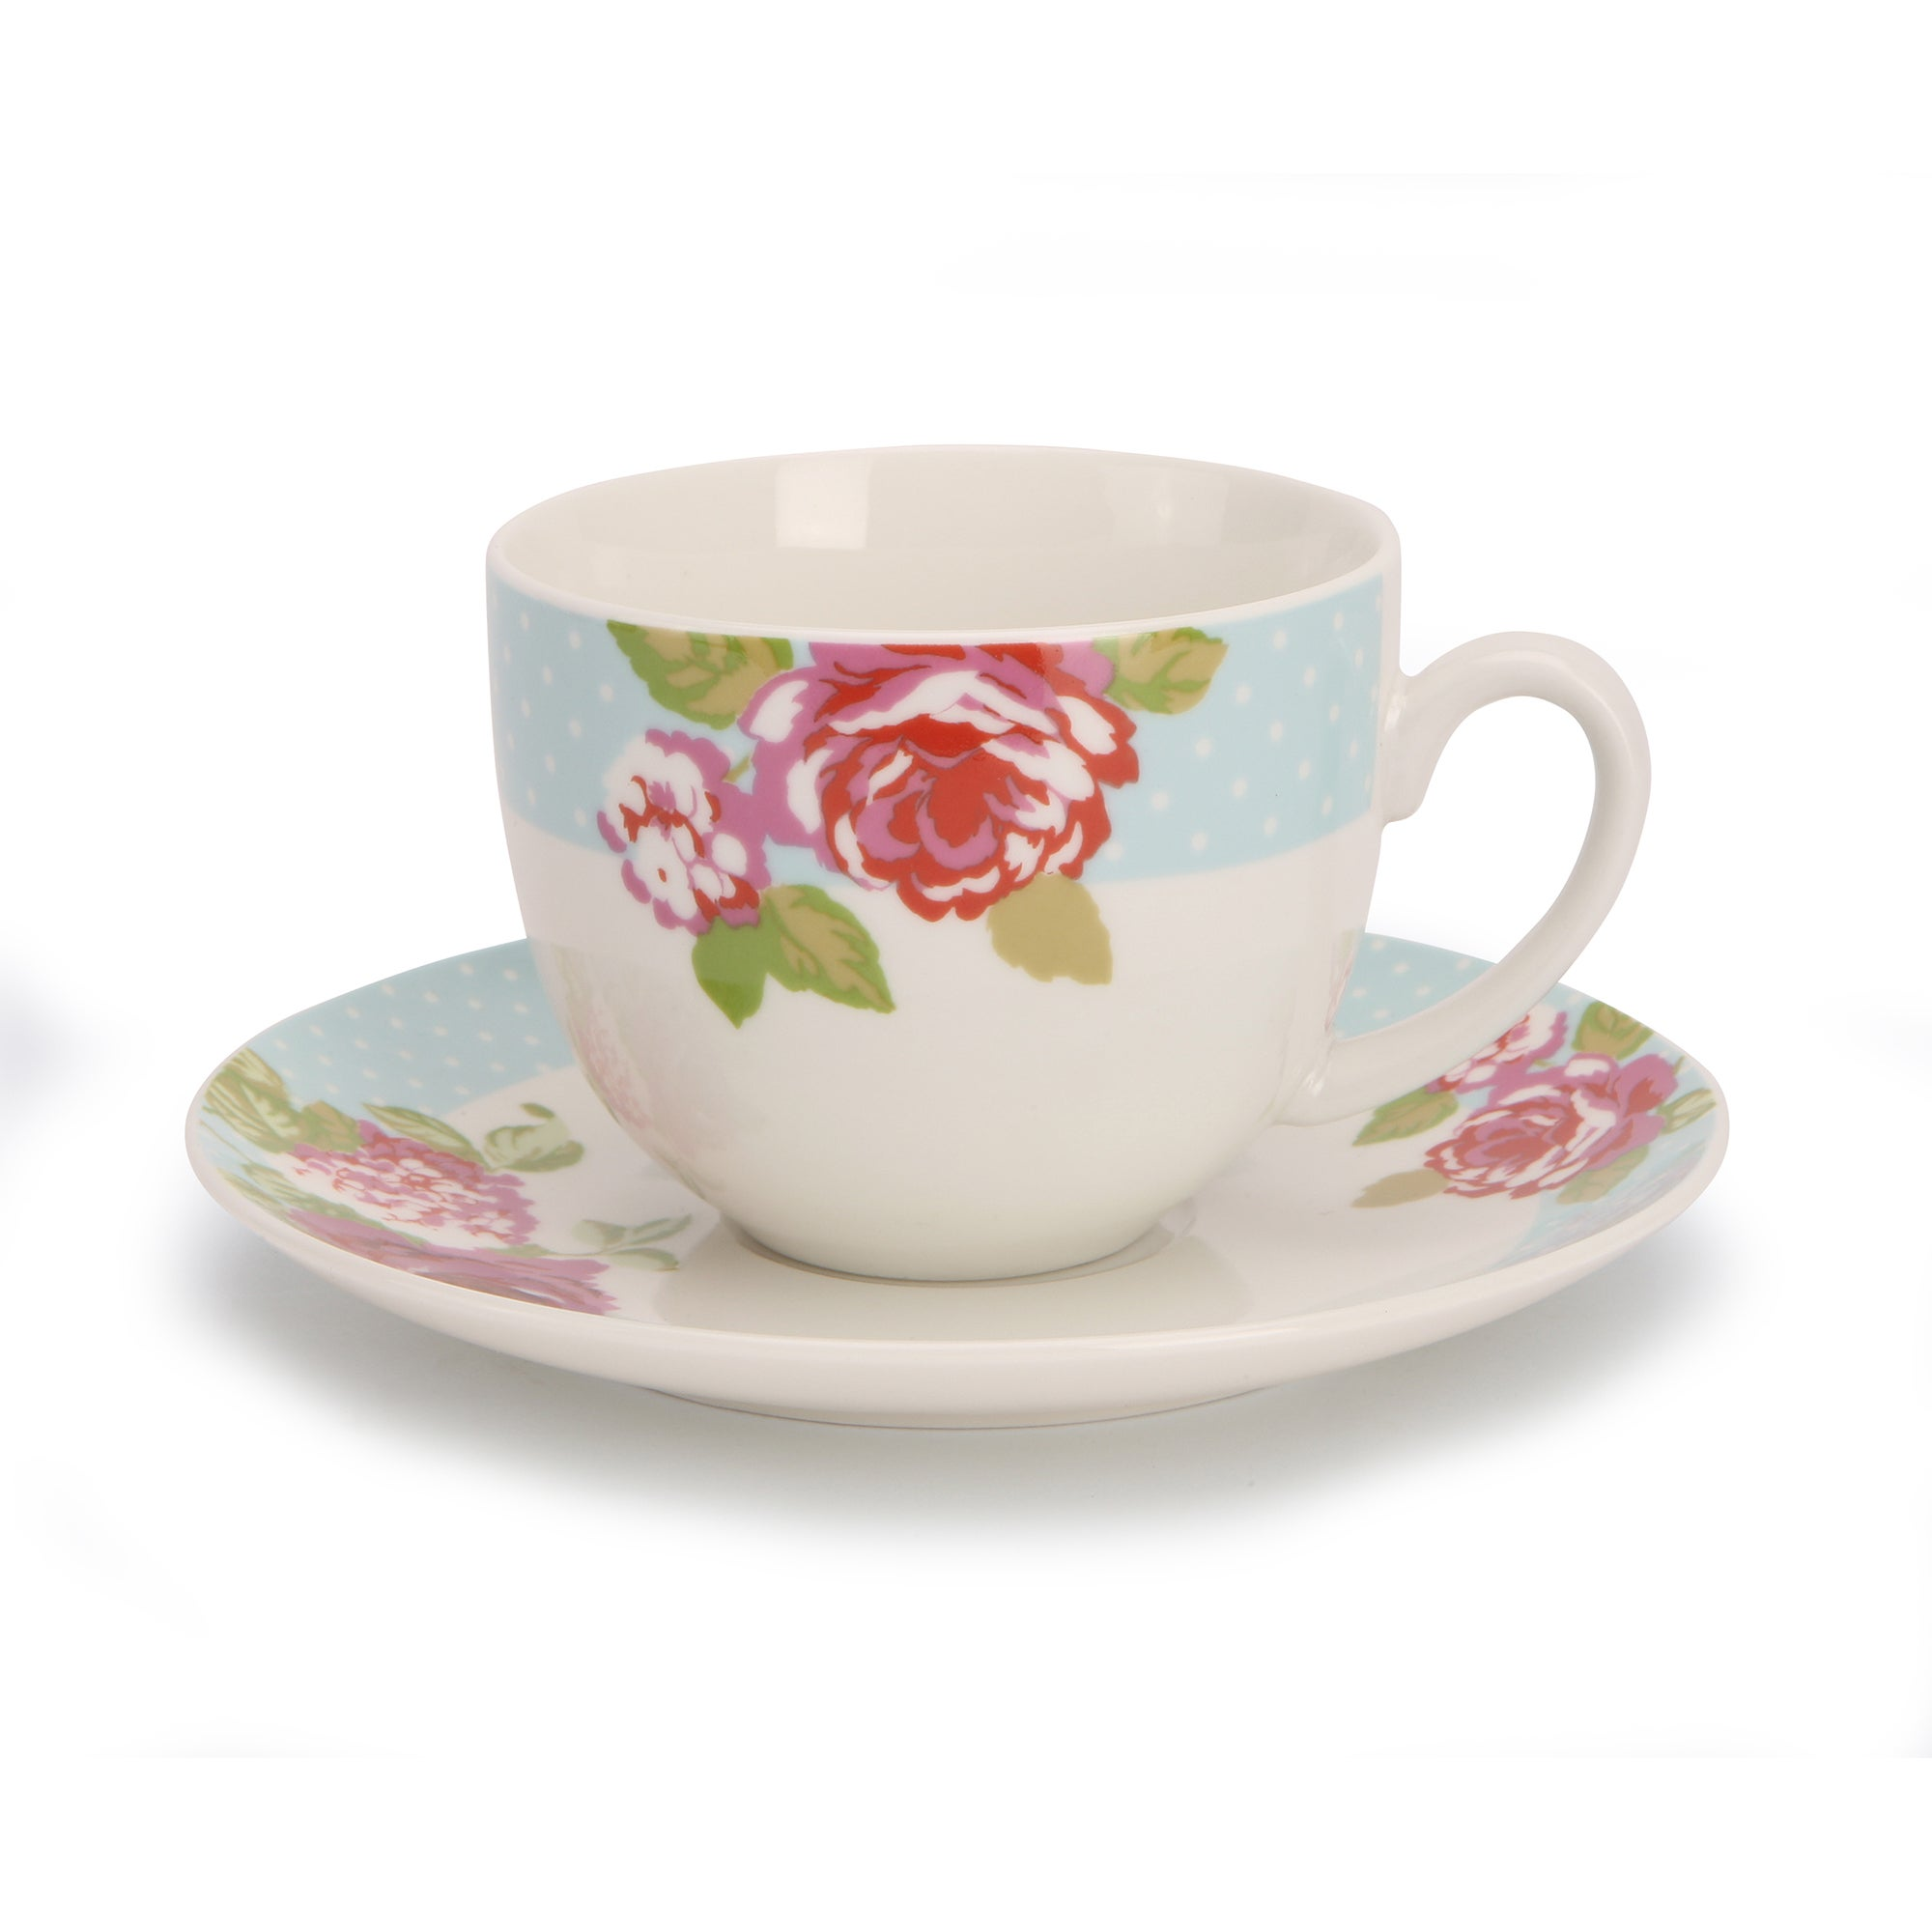 Rose and Ellis Clarendon Collection Teacup and Saucer